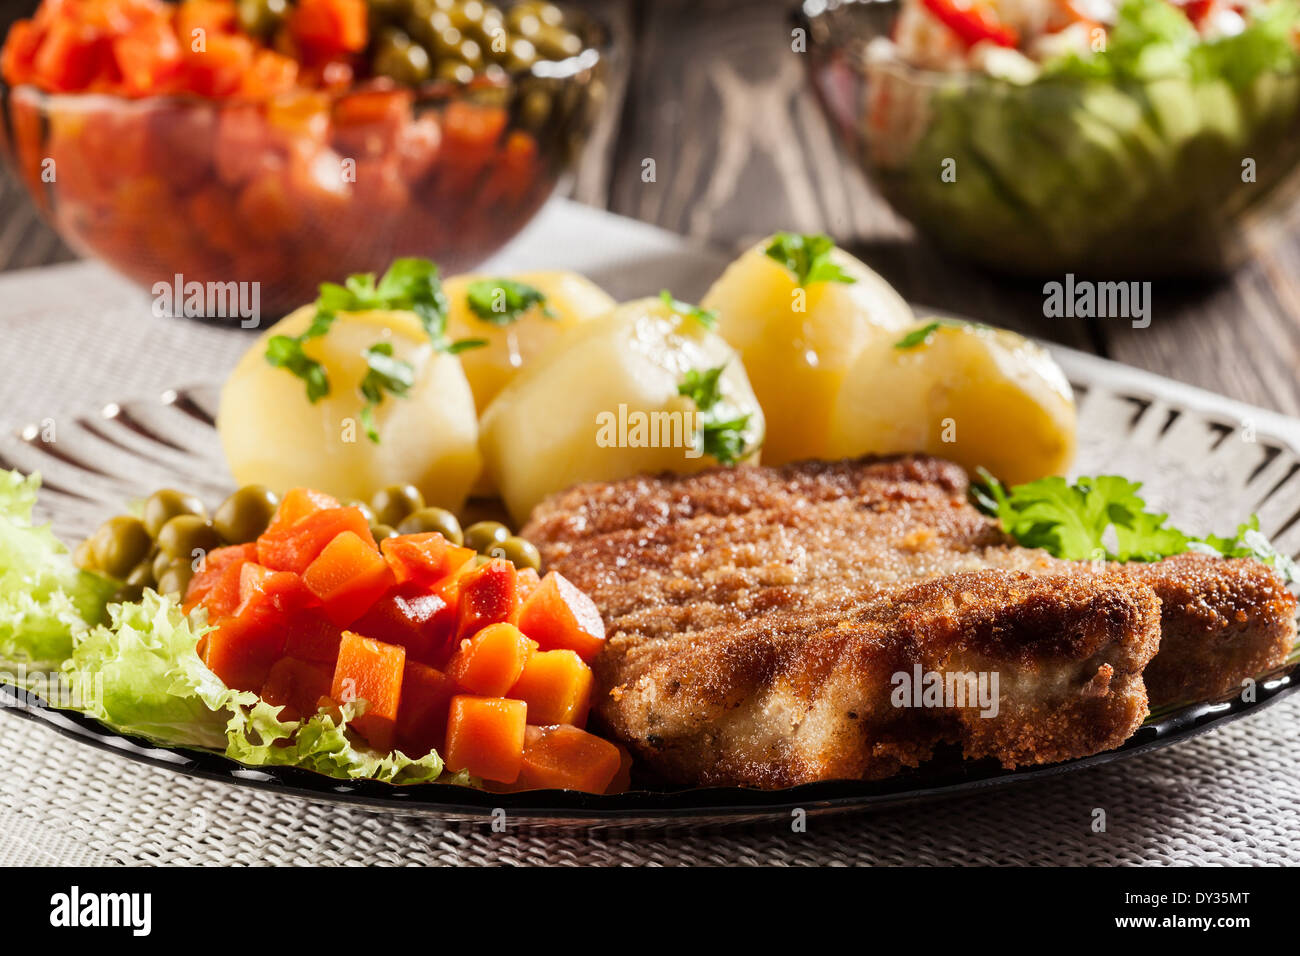 Breaded cutlet and prepared potatoes - Stock Image